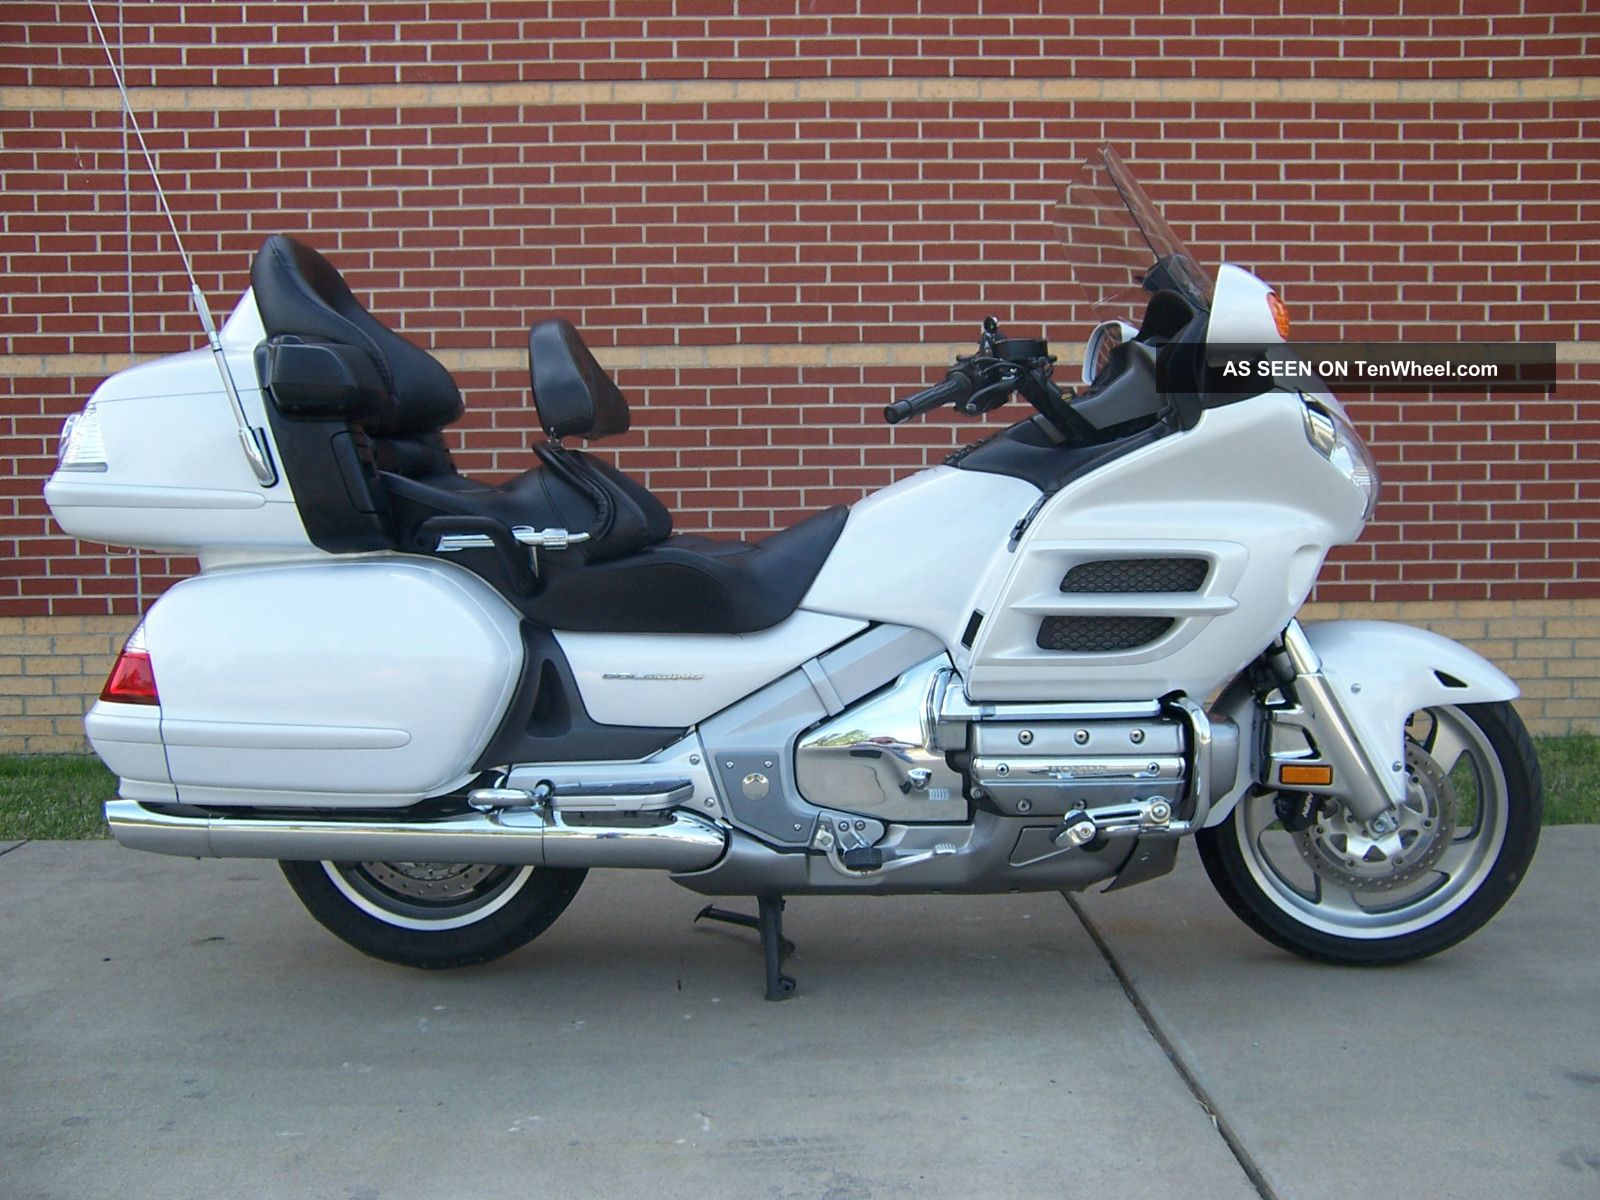 2008 Honda 1800 (hpnm) Goldwing In Pristine Condition Gold Wing photo